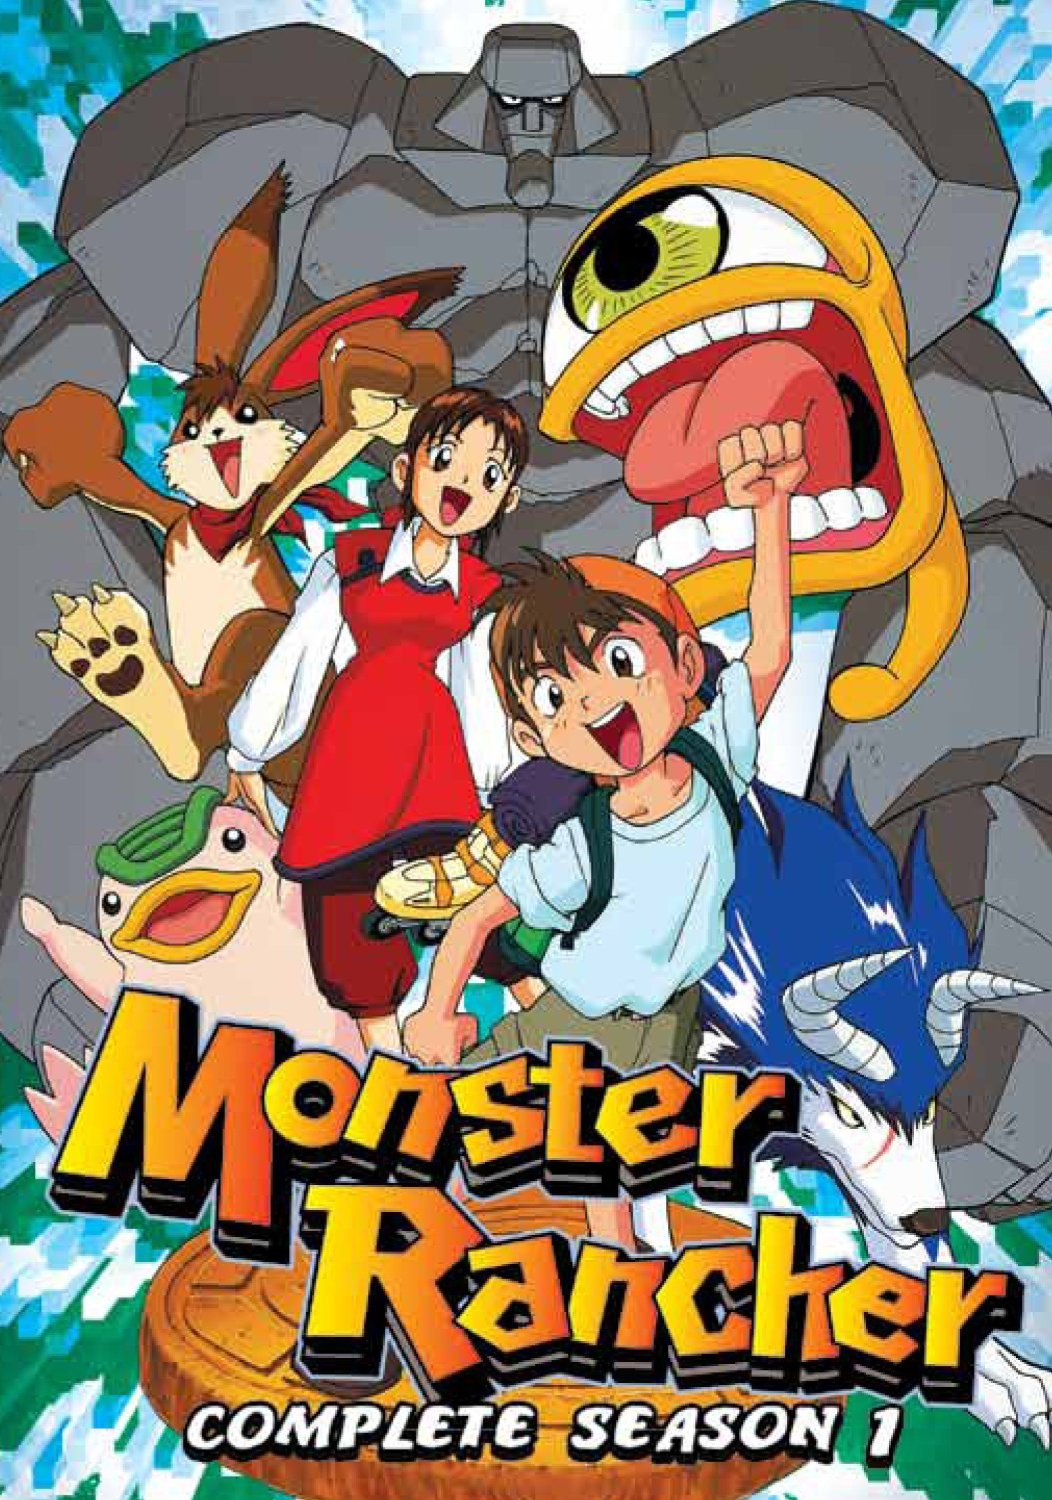 Monster rancher porno nackt pictures